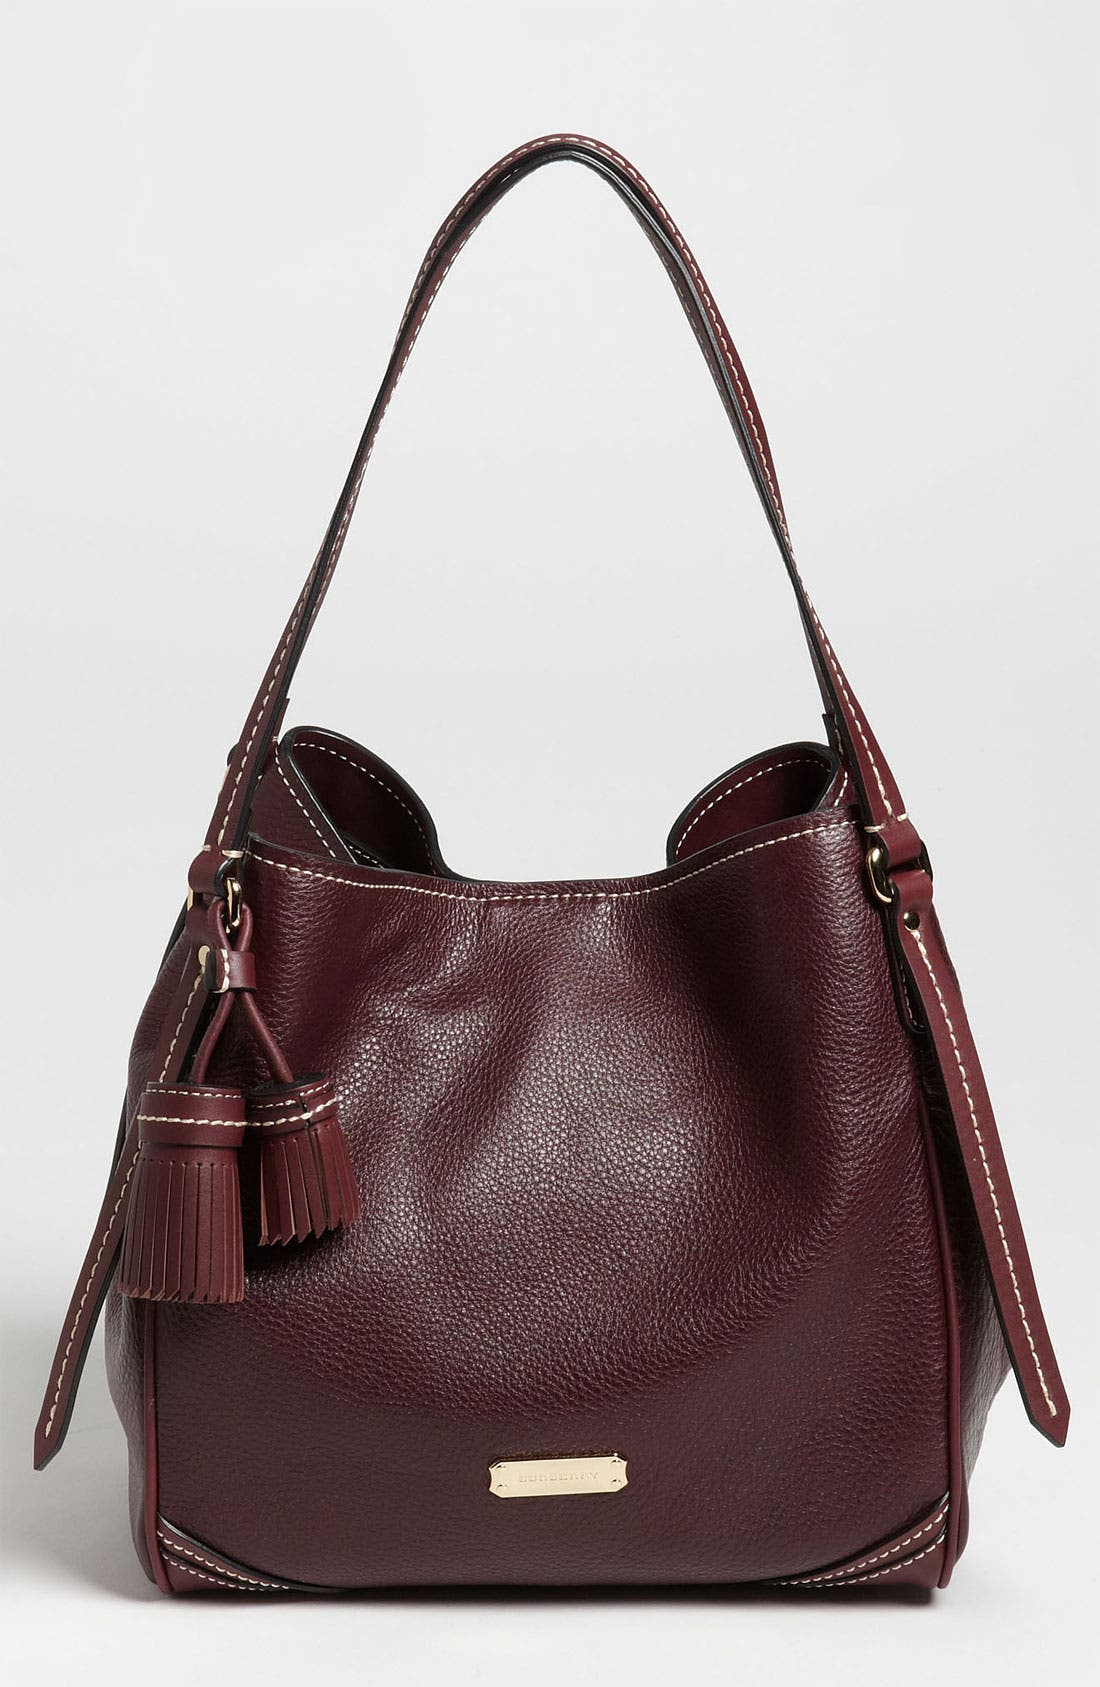 Main Image - Burberry 'Saddle Stitch' Leather Tote